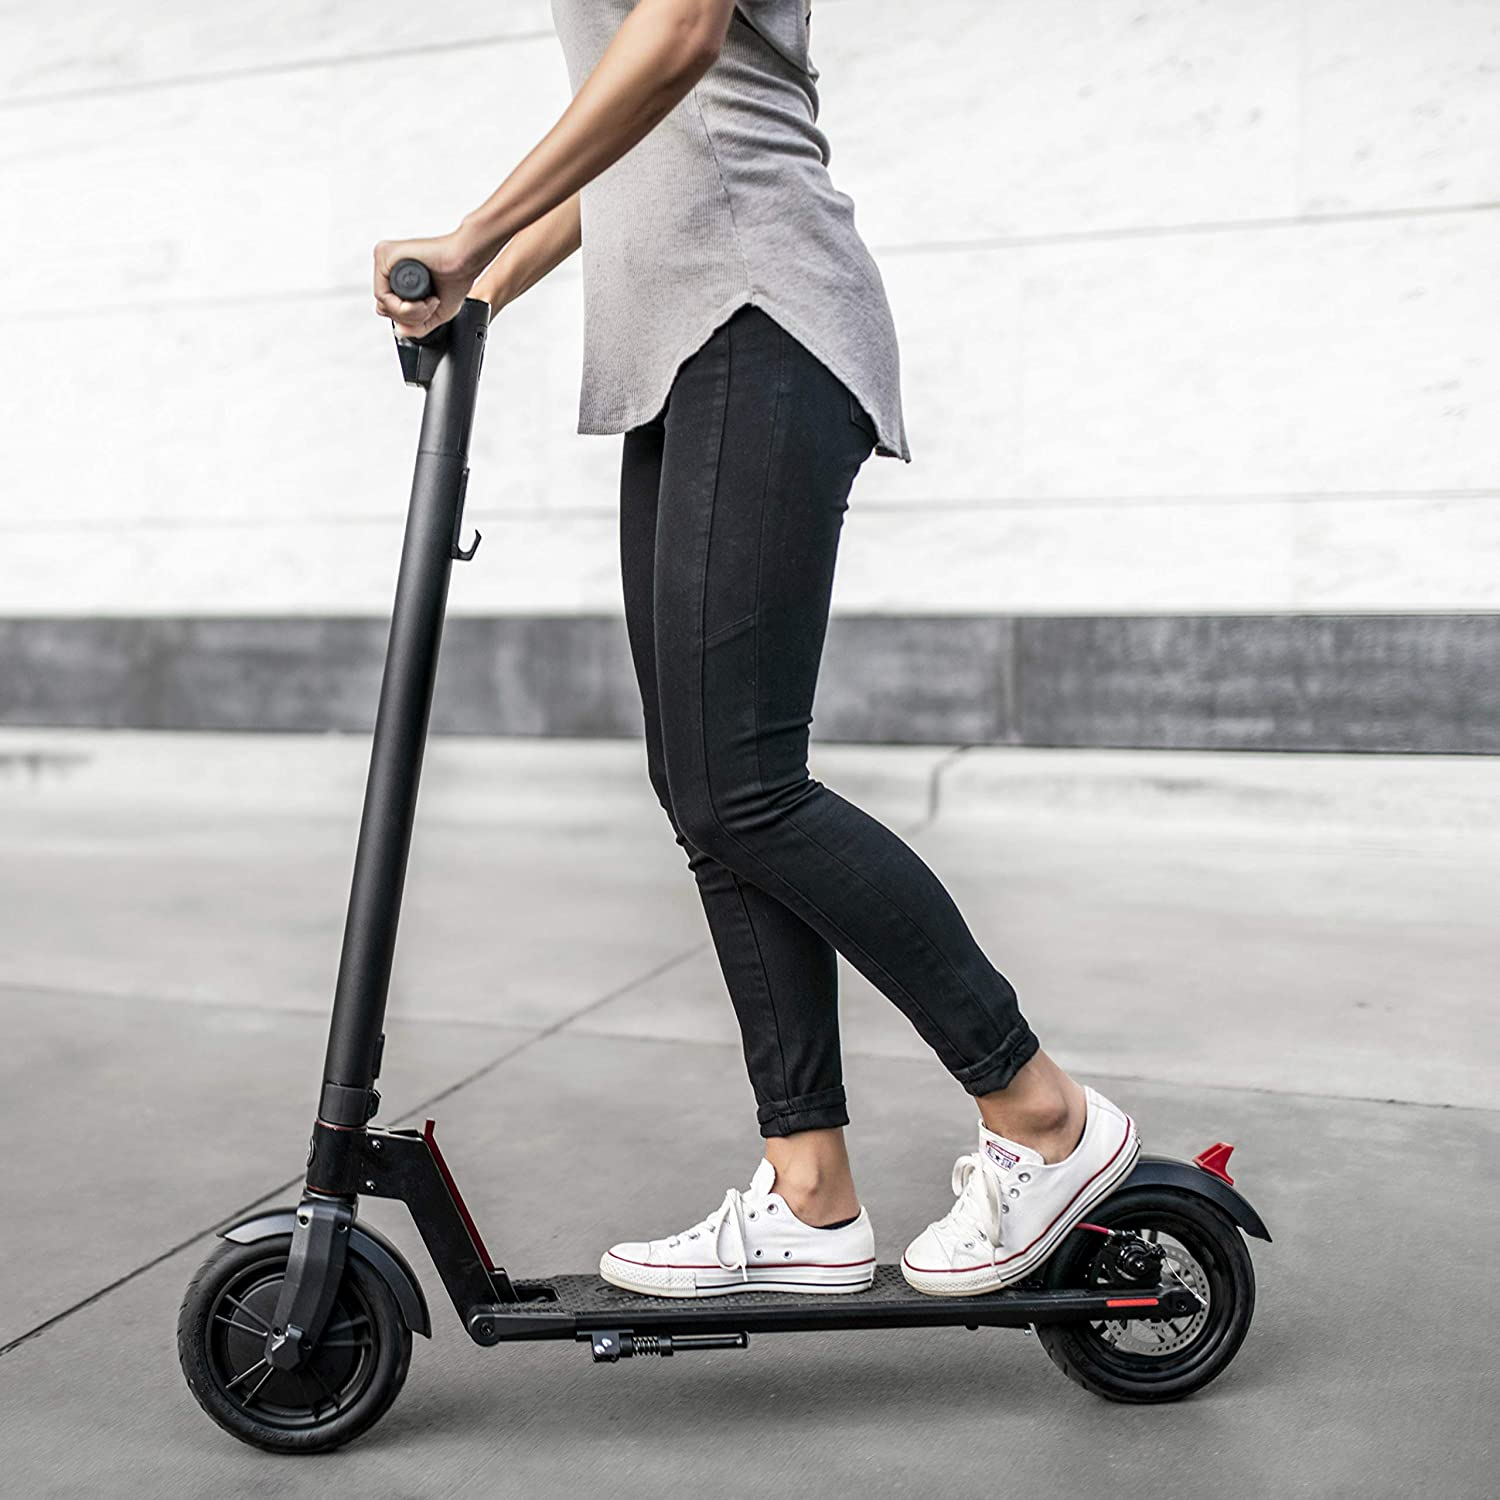 Amazon.com: GOTRAX GXL Commuting Electric Scooter - 8.5